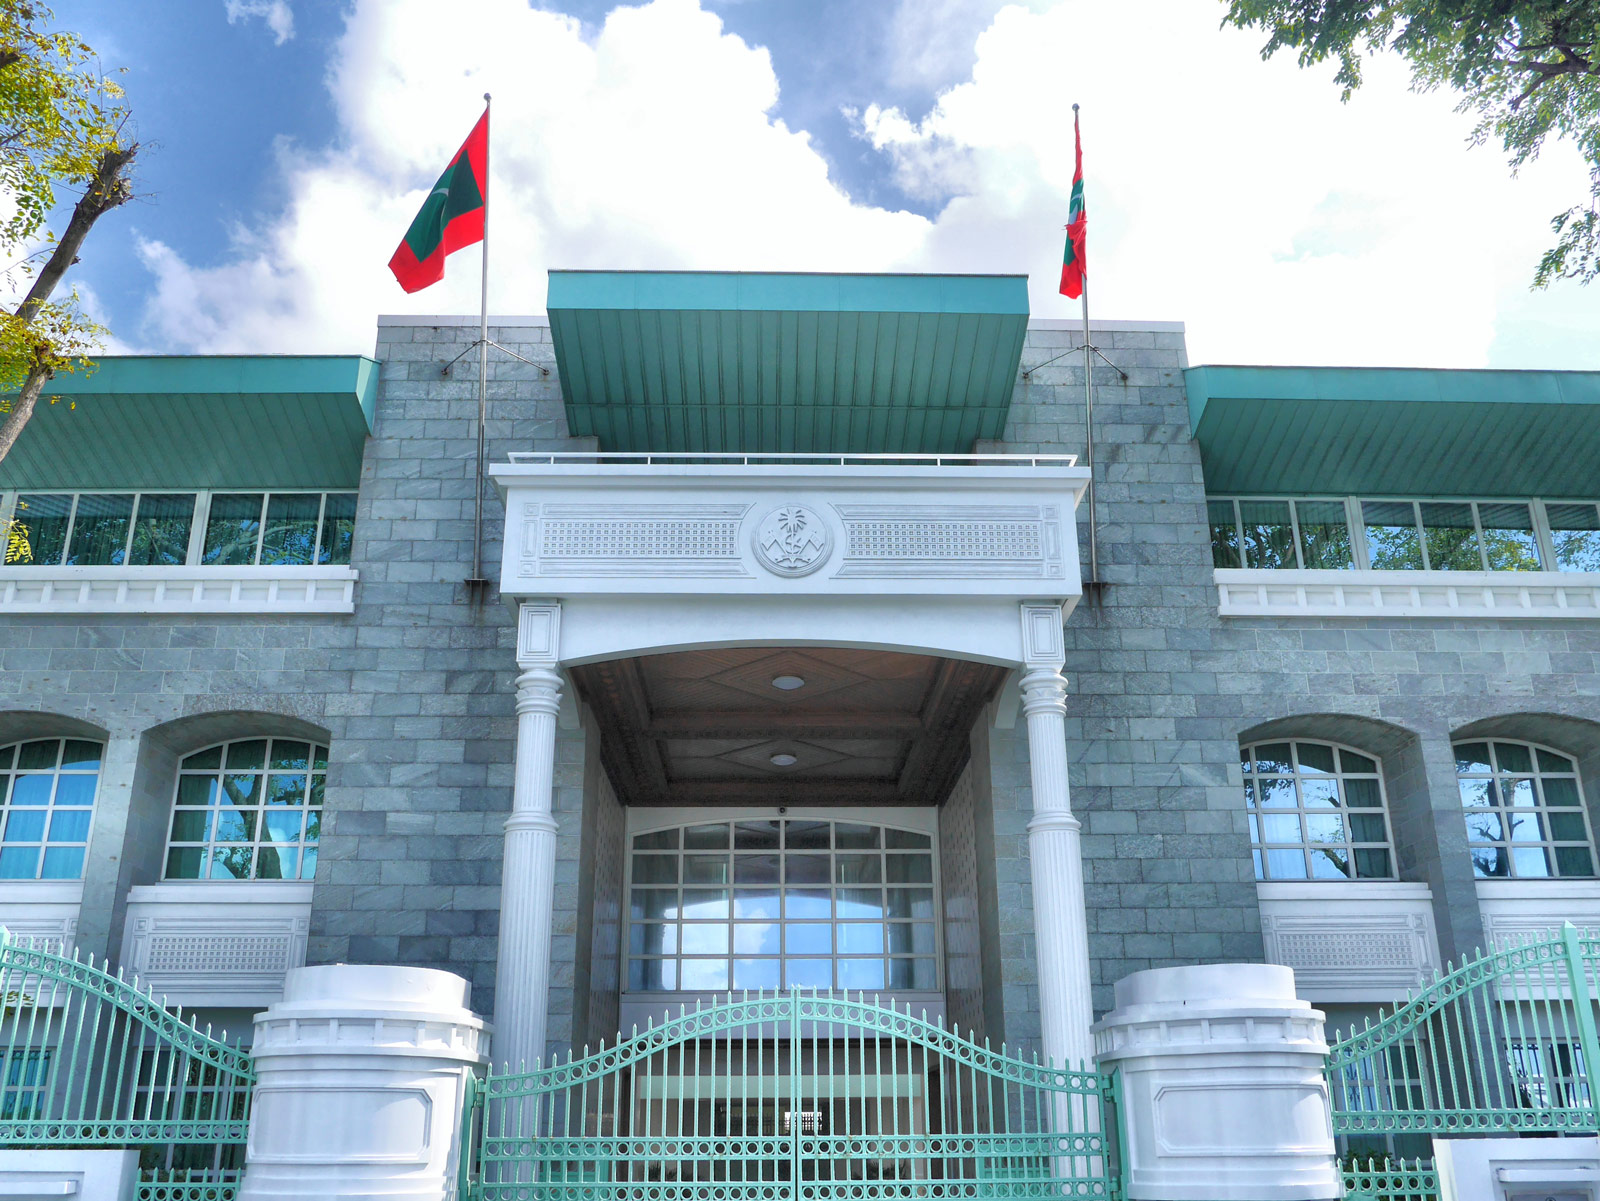 Visit the The President's Office in Malé - The Maldives, The Maldives